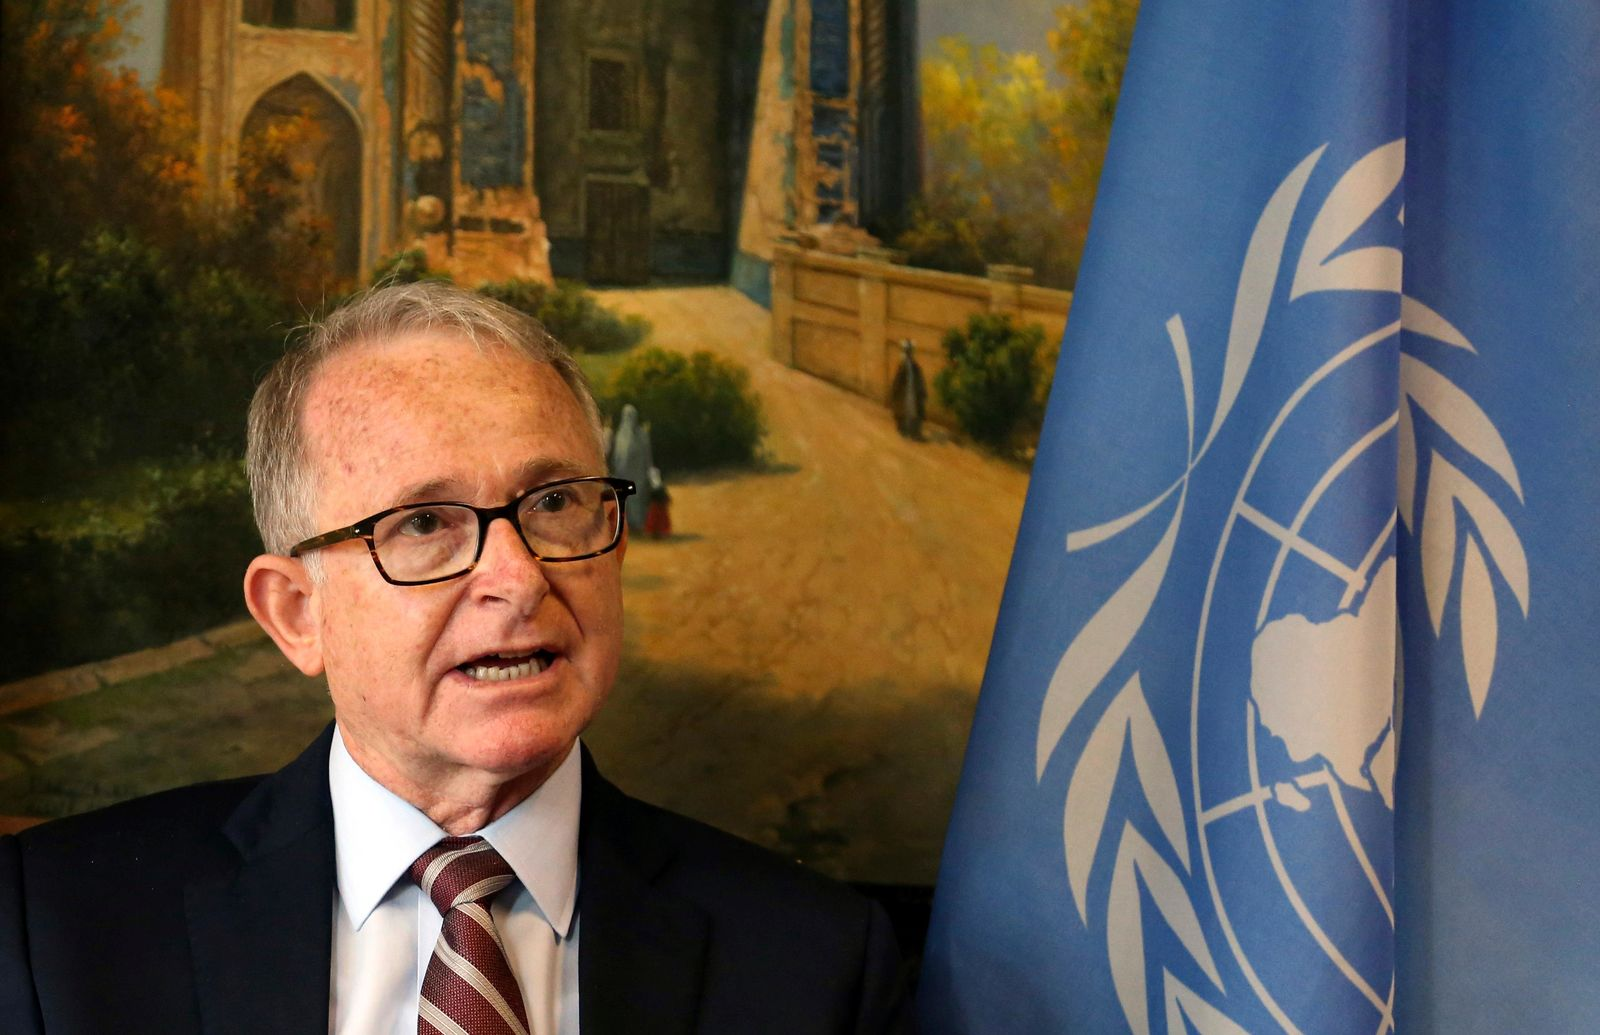 United Nations Assistance Mission in Afghanistan (UNAMA) Human Rights Director Richard Bennett speaks during an interview with the Associated Press in Kabul, Afghanistan, Wednesday, April. 24, 2019. . (AP Photo/Rahmat Gul)